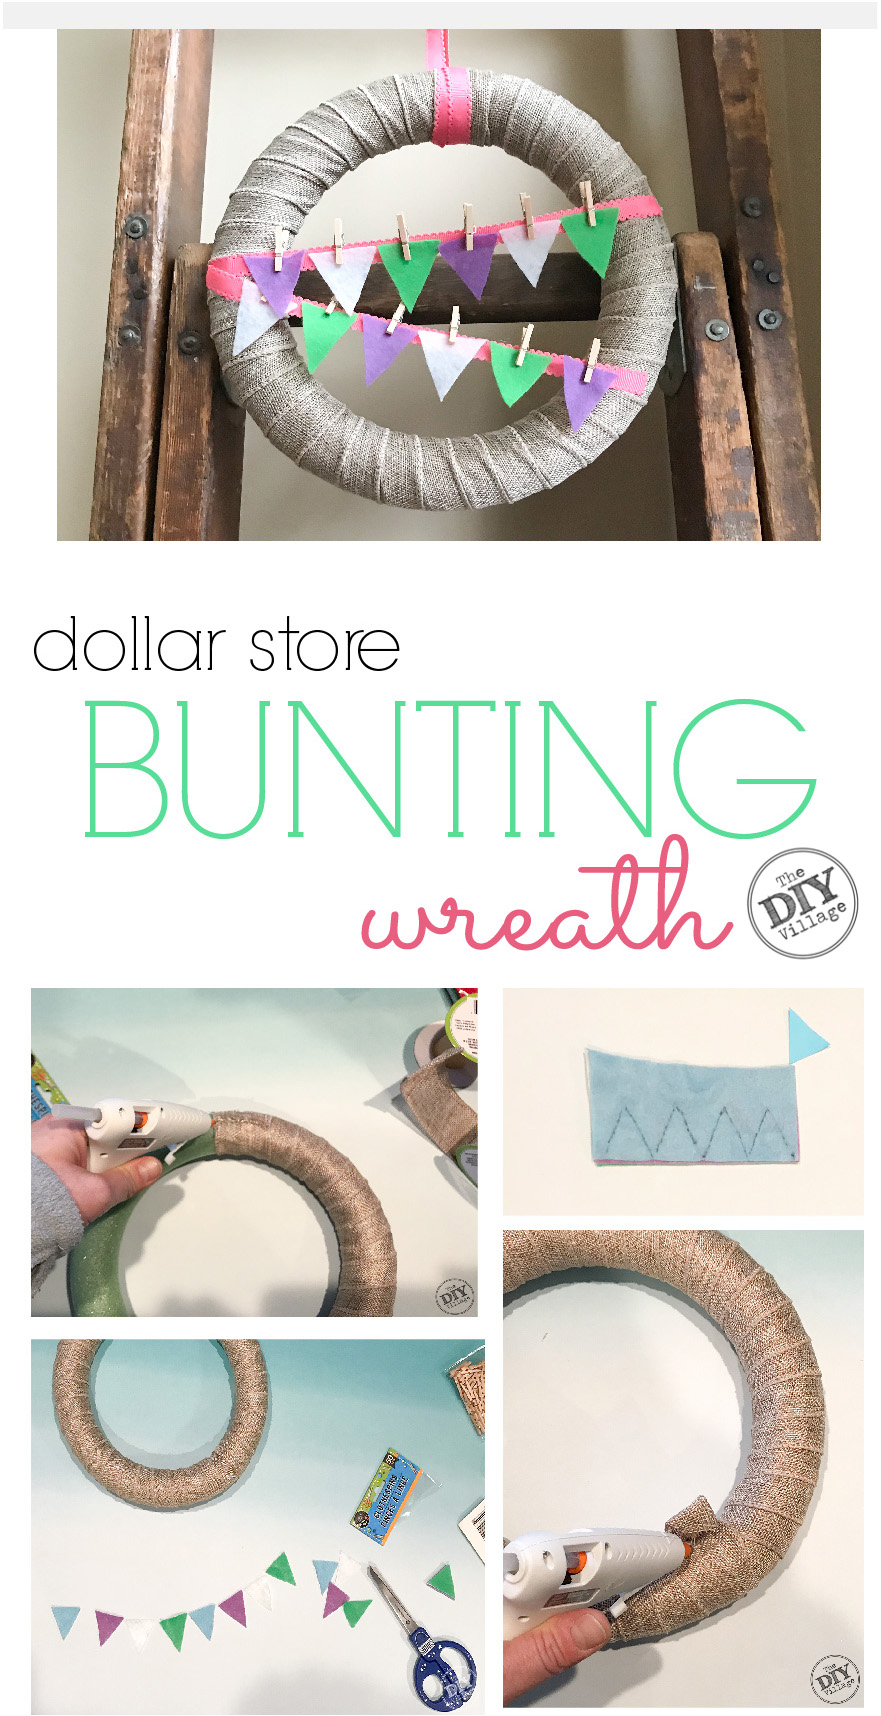 Photo collage of completed dollar store spring bunting wreath with text.